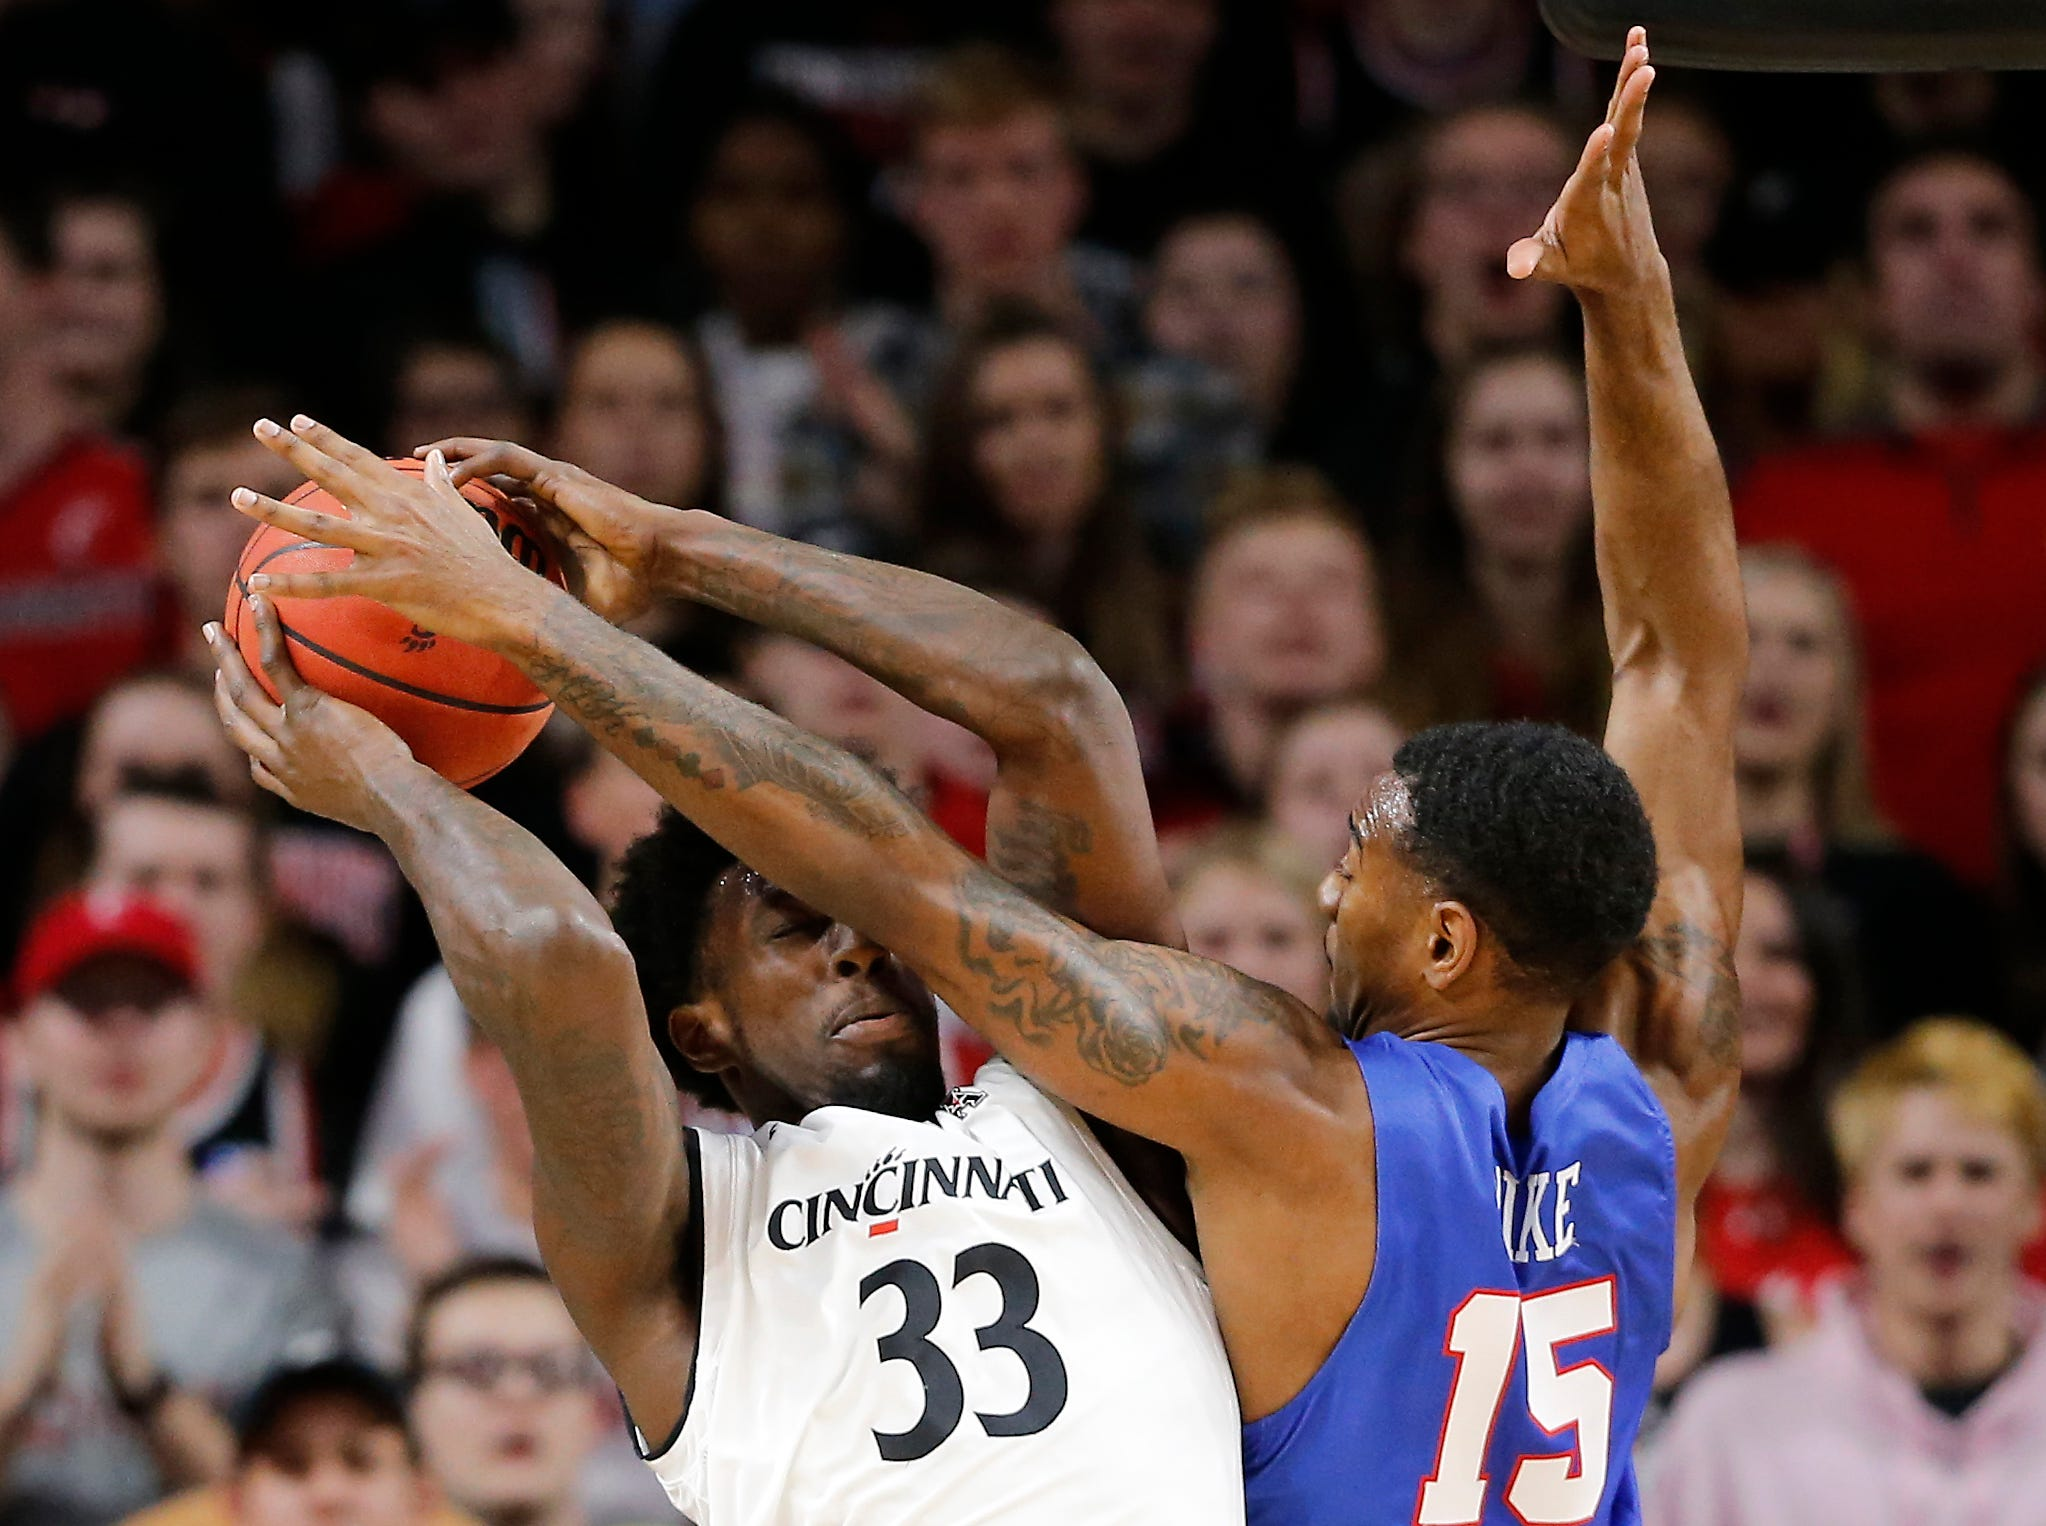 Cincinnati Bearcats center Nysier Brooks (33) pulls down a rebound over Southern Methodist Mustangs forward Isiaha Mike (15) in the first half the the NCAA American Athletic Conference basketball game between the Cincinnati Bearcats and the Southern Methodist Mustangs at Fifth Third Arena in Cincinnati on Saturday, Feb. 2, 2019.